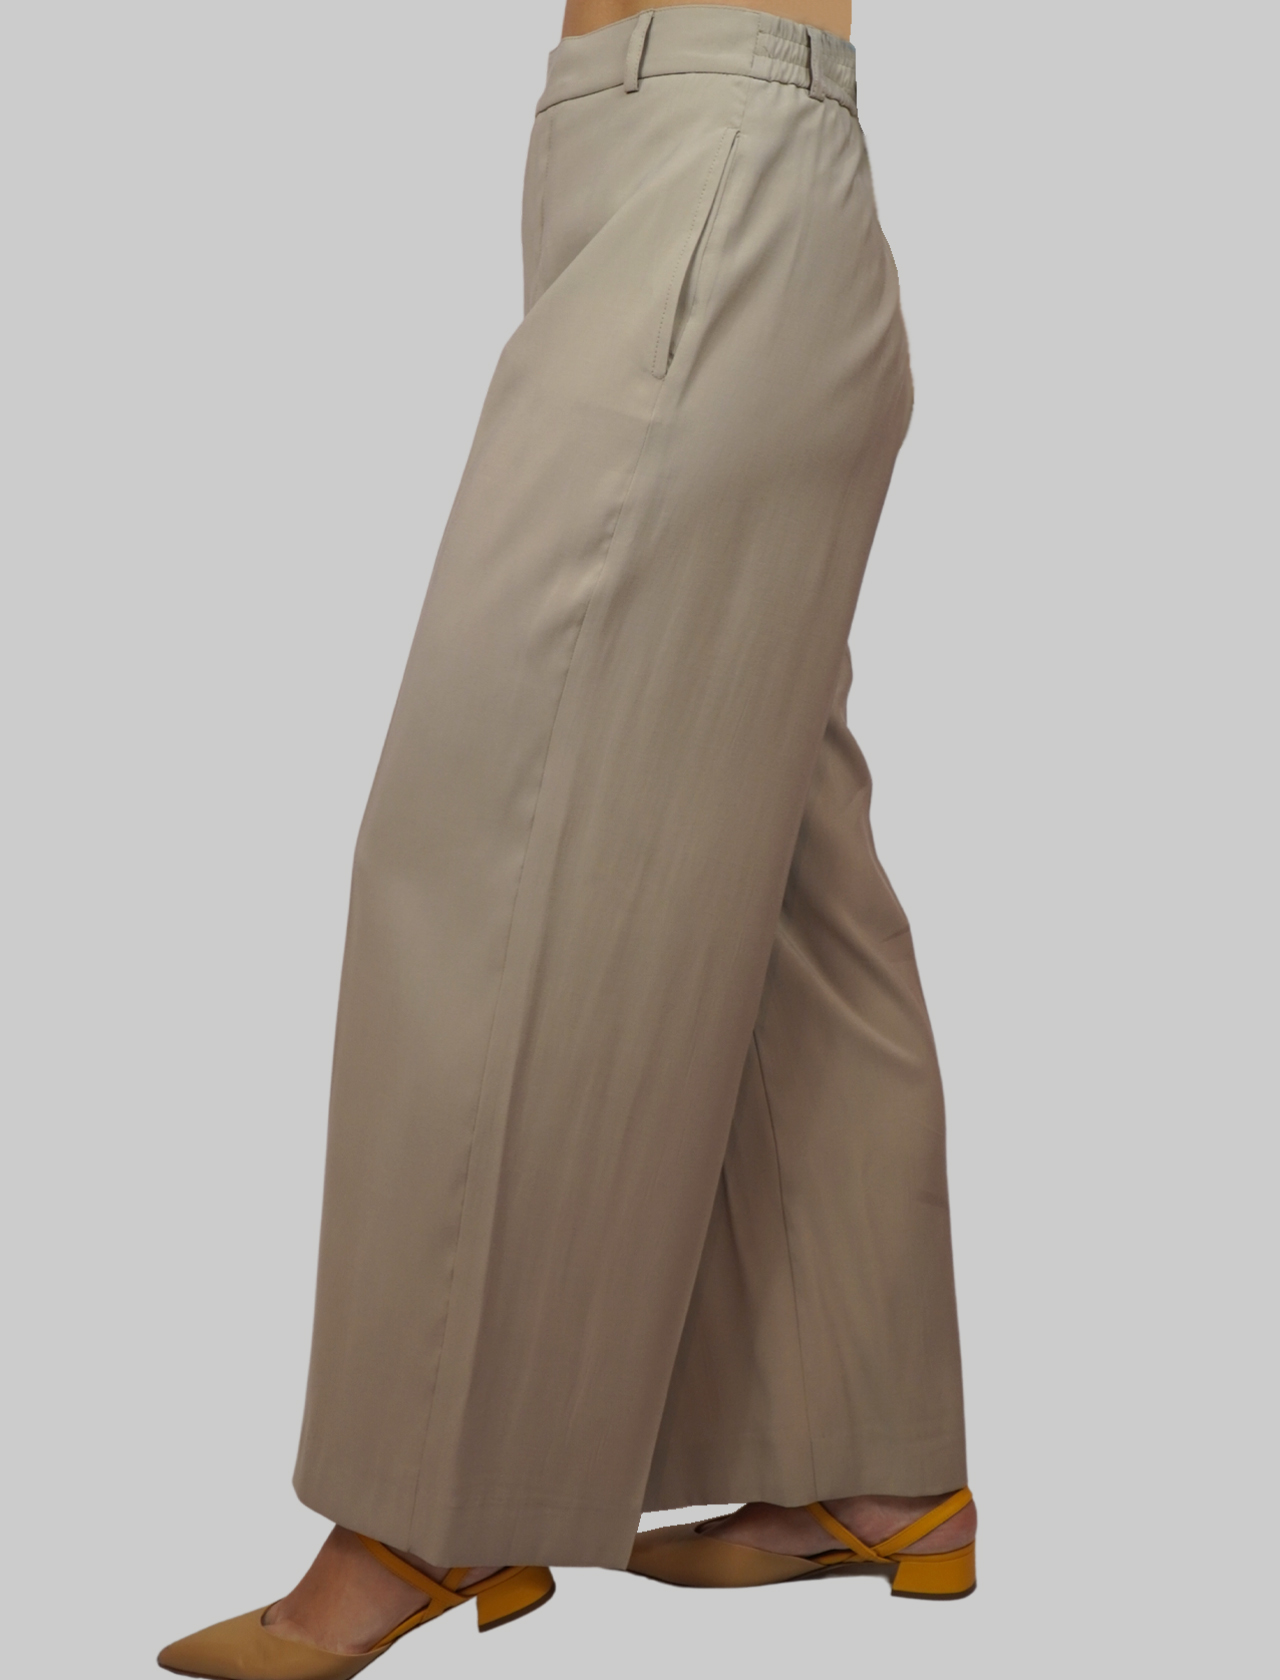 Women's Clothing Trousers in Beige Cupro Wide Elastic Fabric Mercì | Skirts and Pants | P245C015